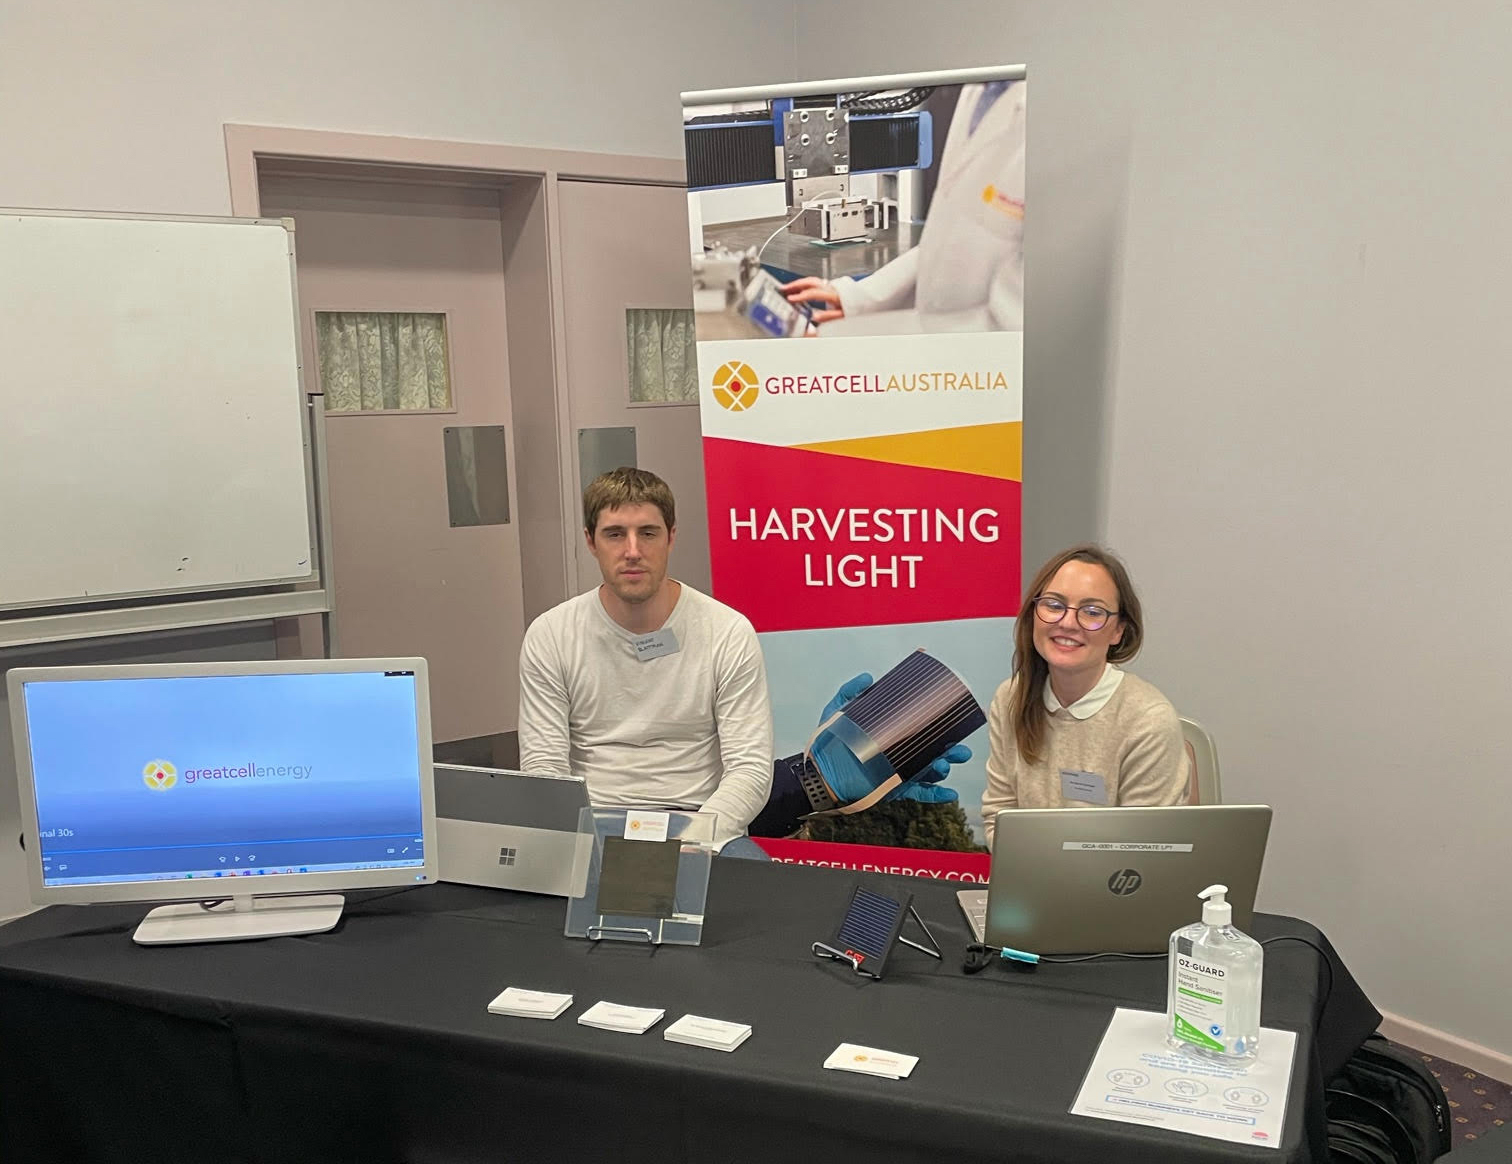 On 29 April, Greatcell Australia was an invited exhibitor at the AgriPark Inauguration held at the Charles Sturt University Convention Centre in Wagga Wagga.